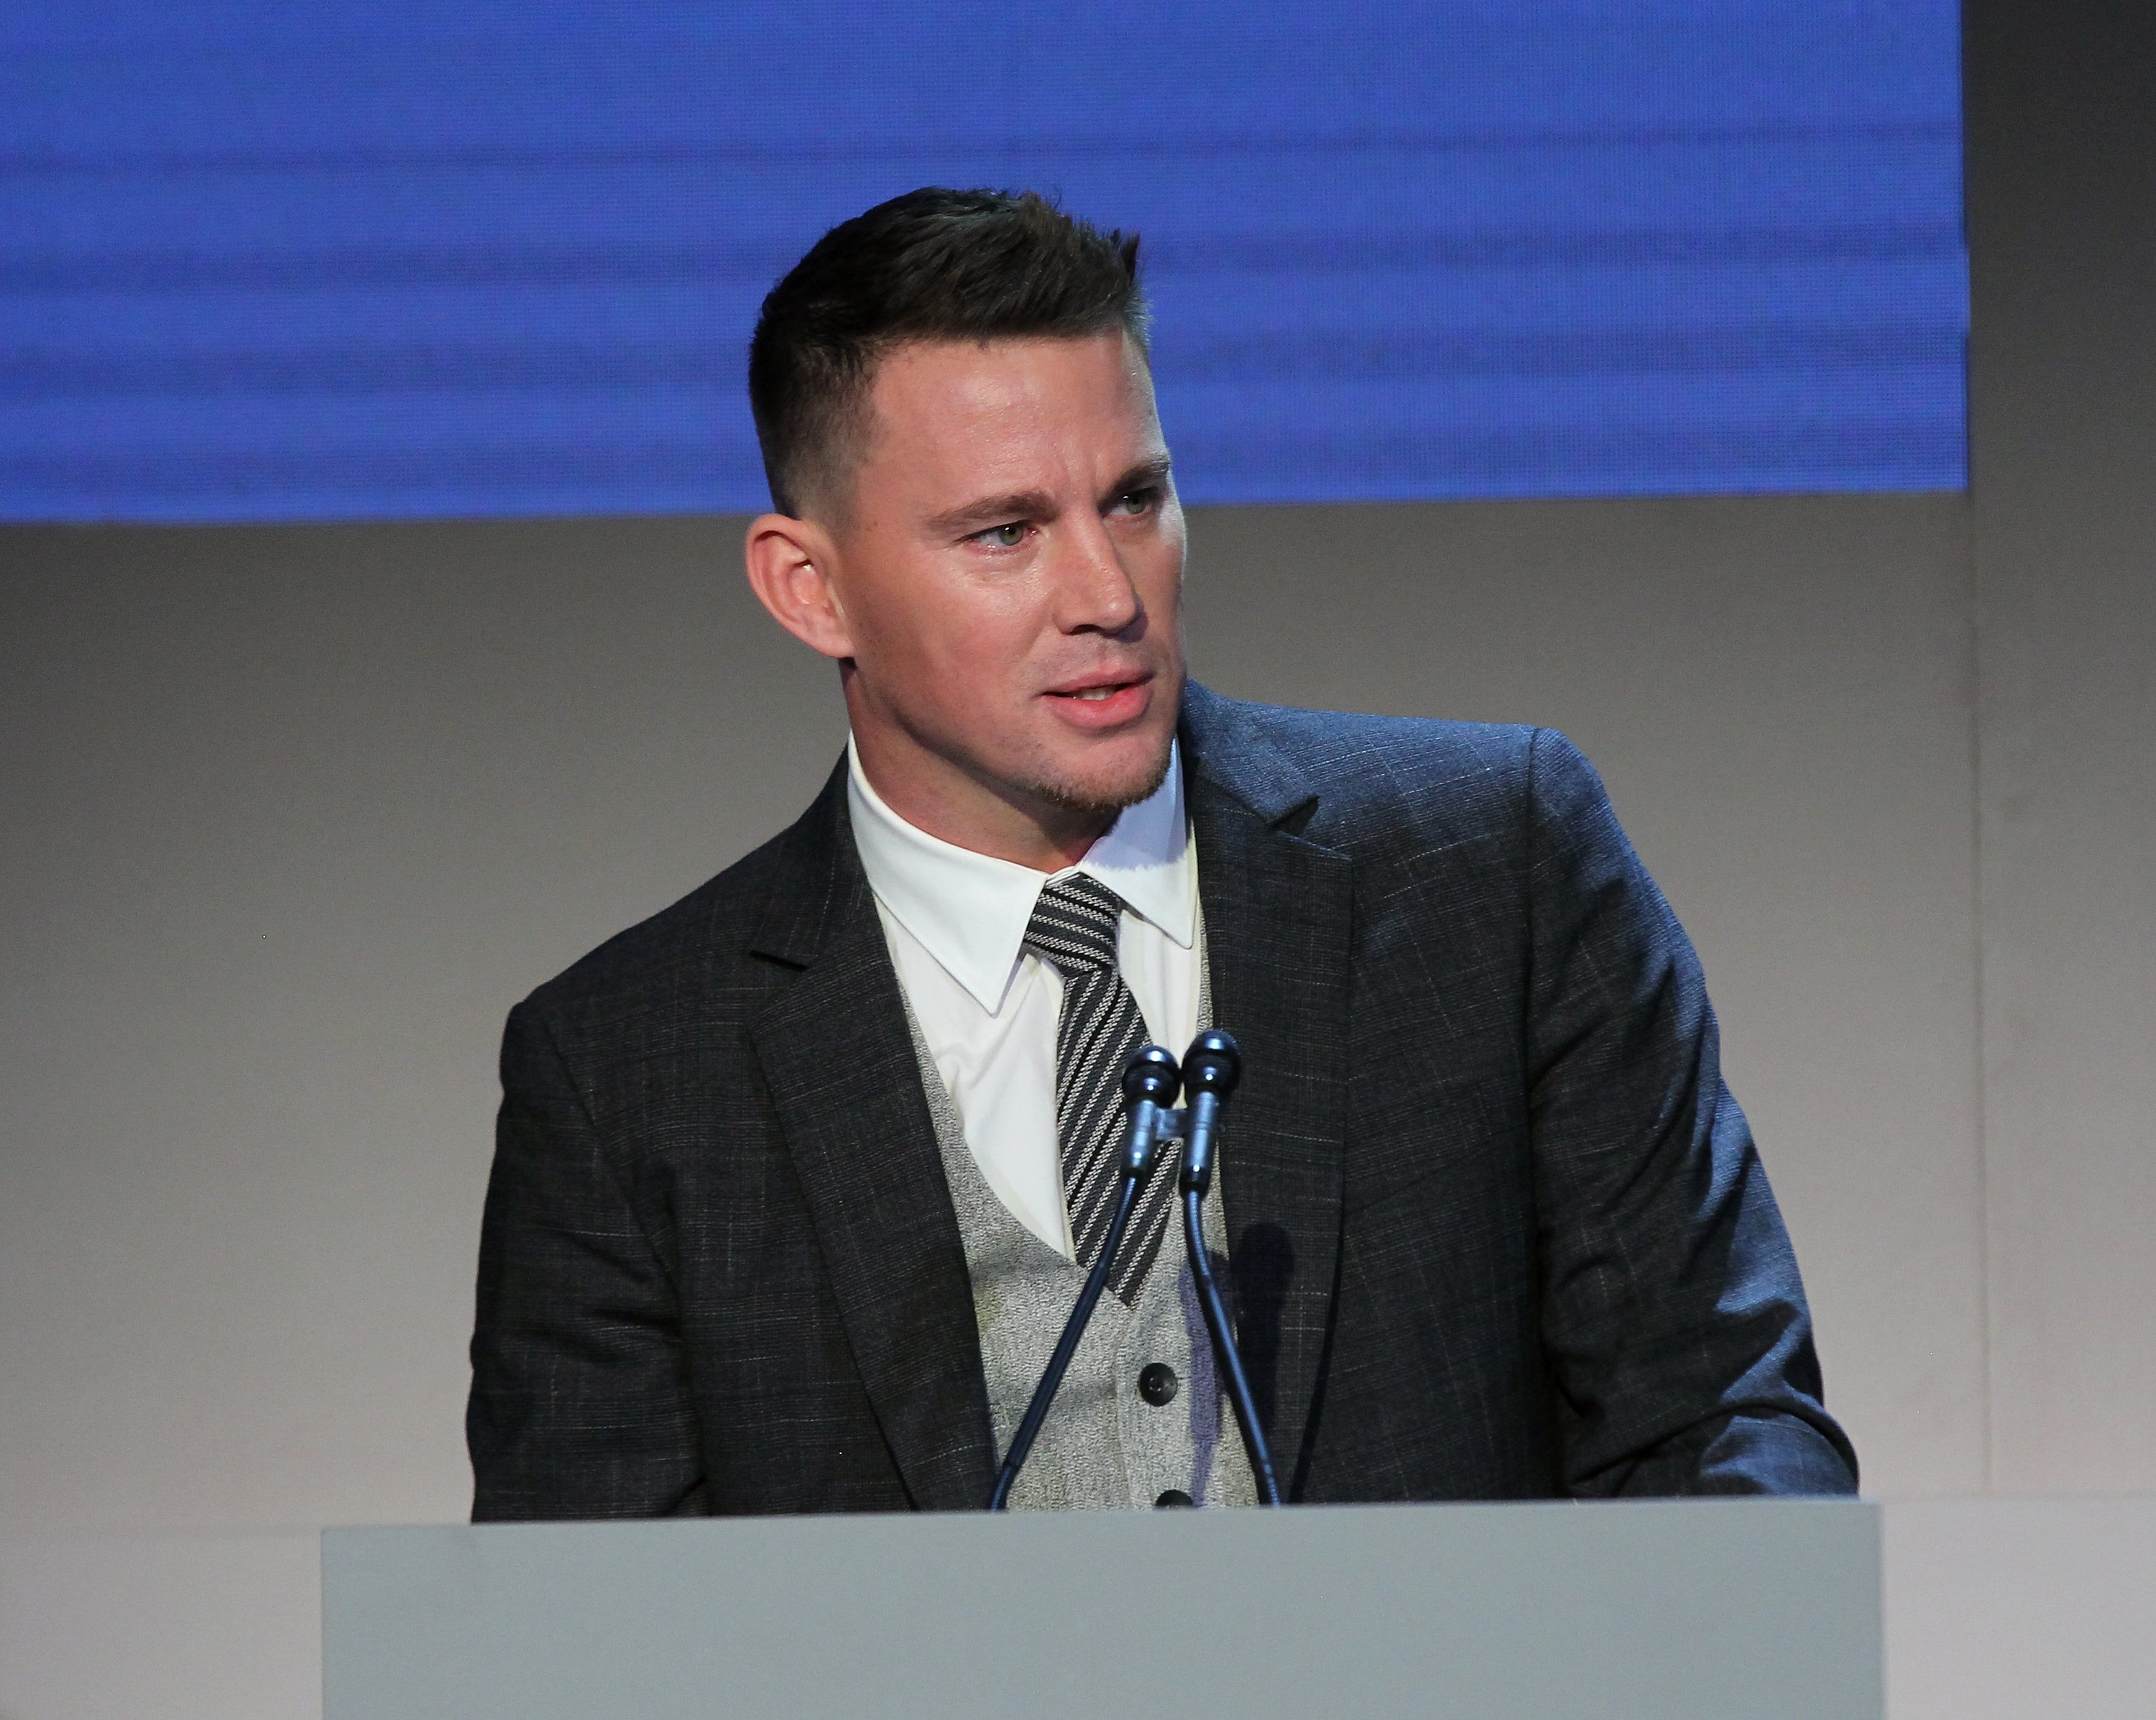 Channing Tatum speaks at the Innovator Awards in New York City on November 7, 2018 | Photo: Getty Images